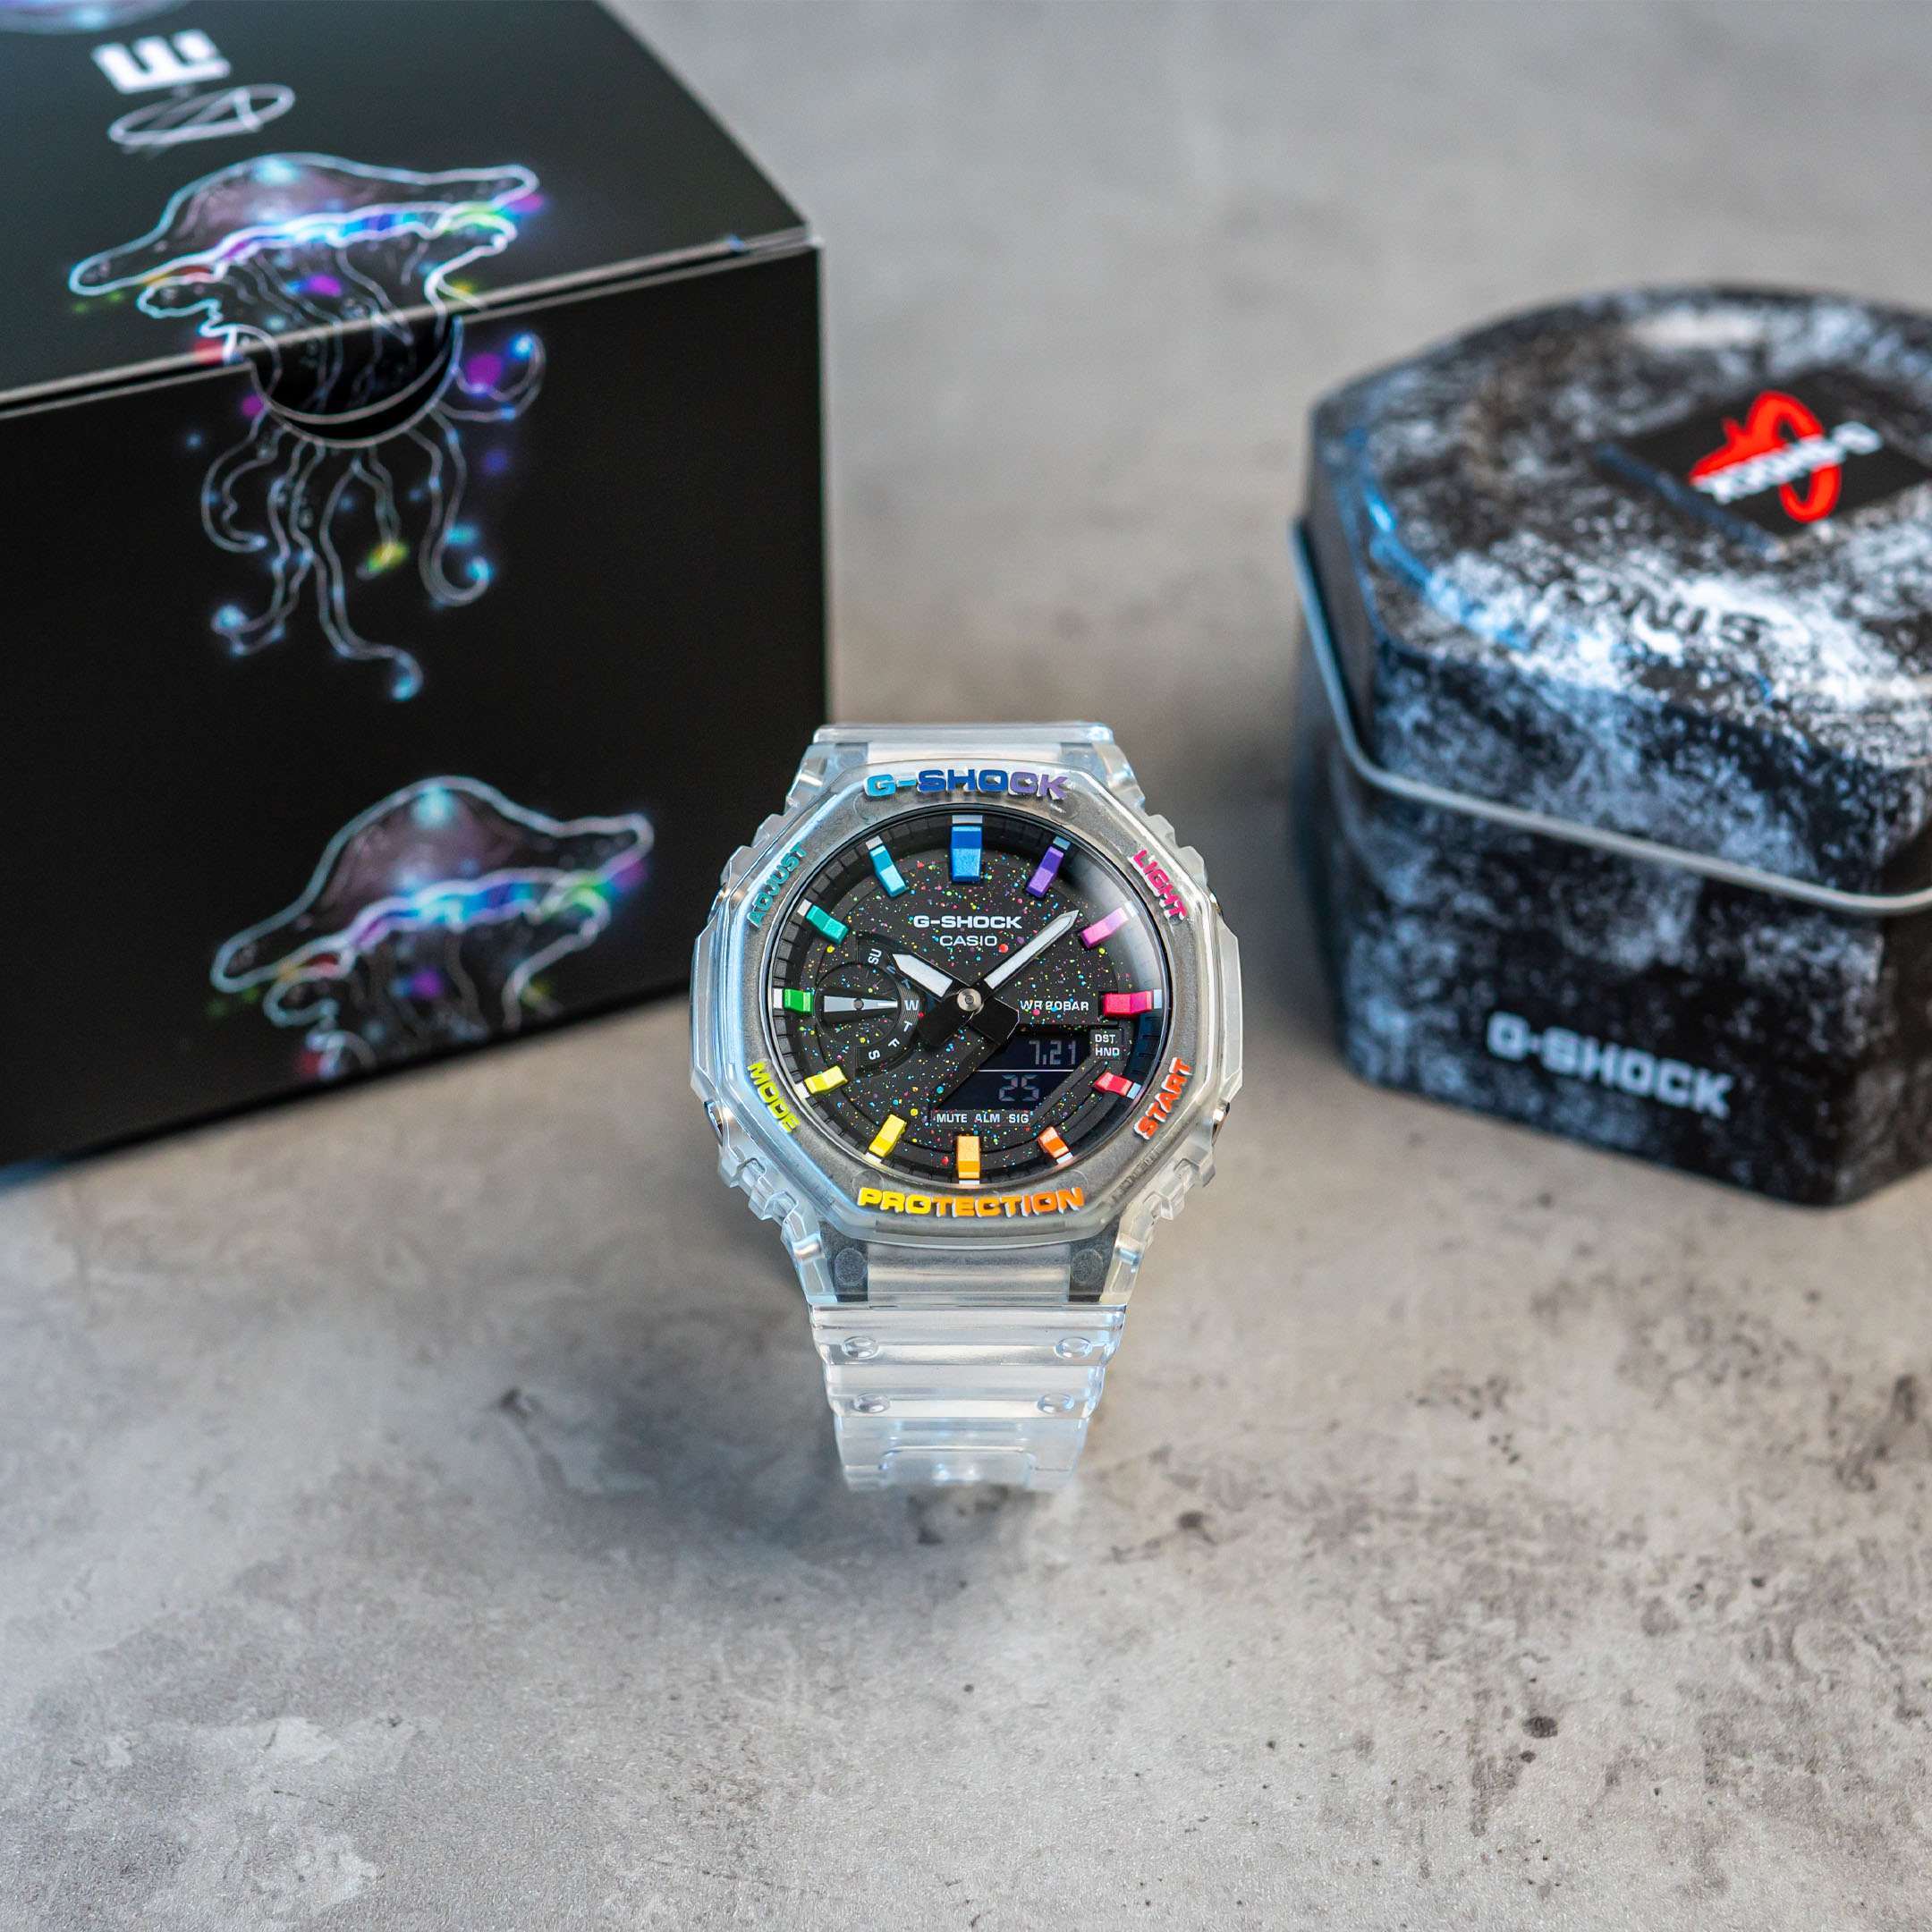 IFLW G-Shock GA-2100SKE-7AER CasiOak Crystal Jellyfish Limited Edition watch hand-painted by the Dial Artist box